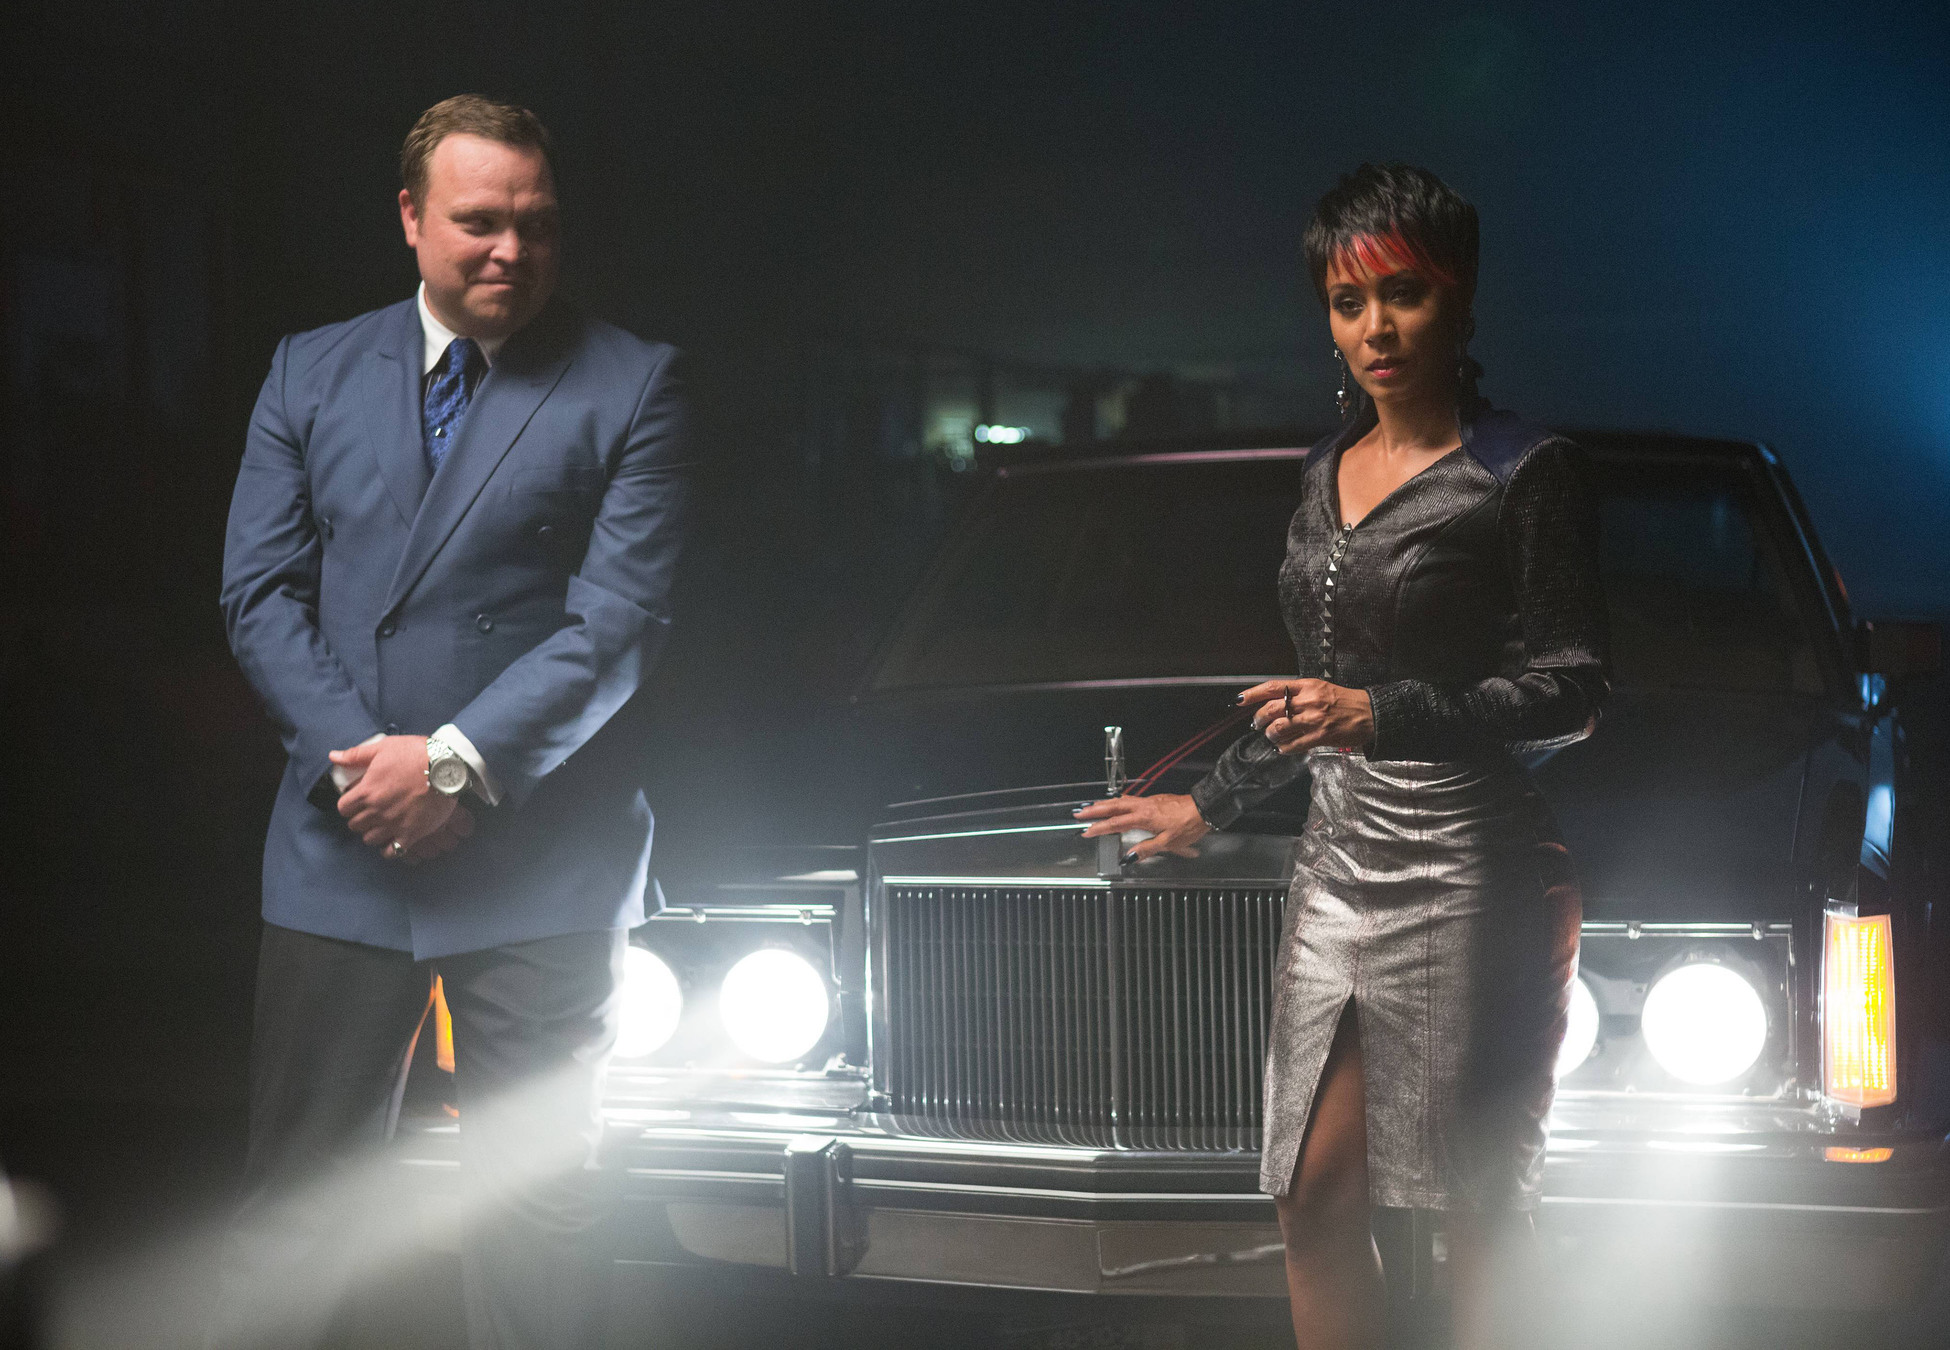 """GOTHAM: Fish Mooney (Jada Pinkett Smith, R) and Butch Gilzean (guest star Drew Powell, L) test a potential business associate in the """"Arkham"""" episode of GOTHAM airing Monday, Oct. 13 (8:00-9:00 PM ET/PT) on FOX. ©2014 Fox Broadcasting Co. Cr: Jessica Miglio/FOX"""